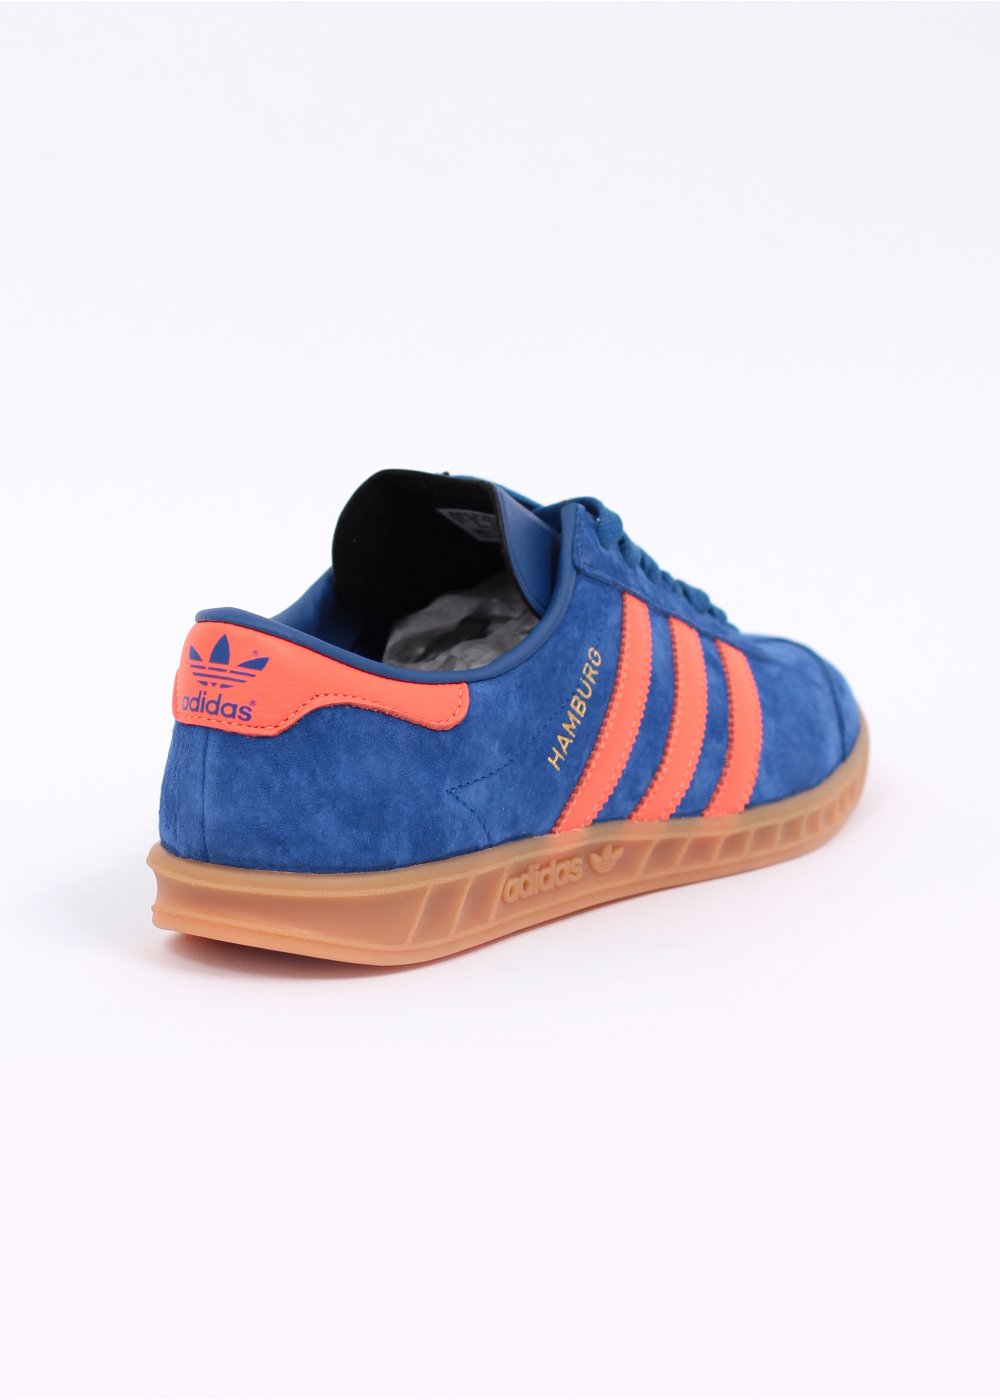 Ambicioso finalizando reacción  adidas Originals Hamburg 'Dublin' Trainers - Royal Blue / Warning Red